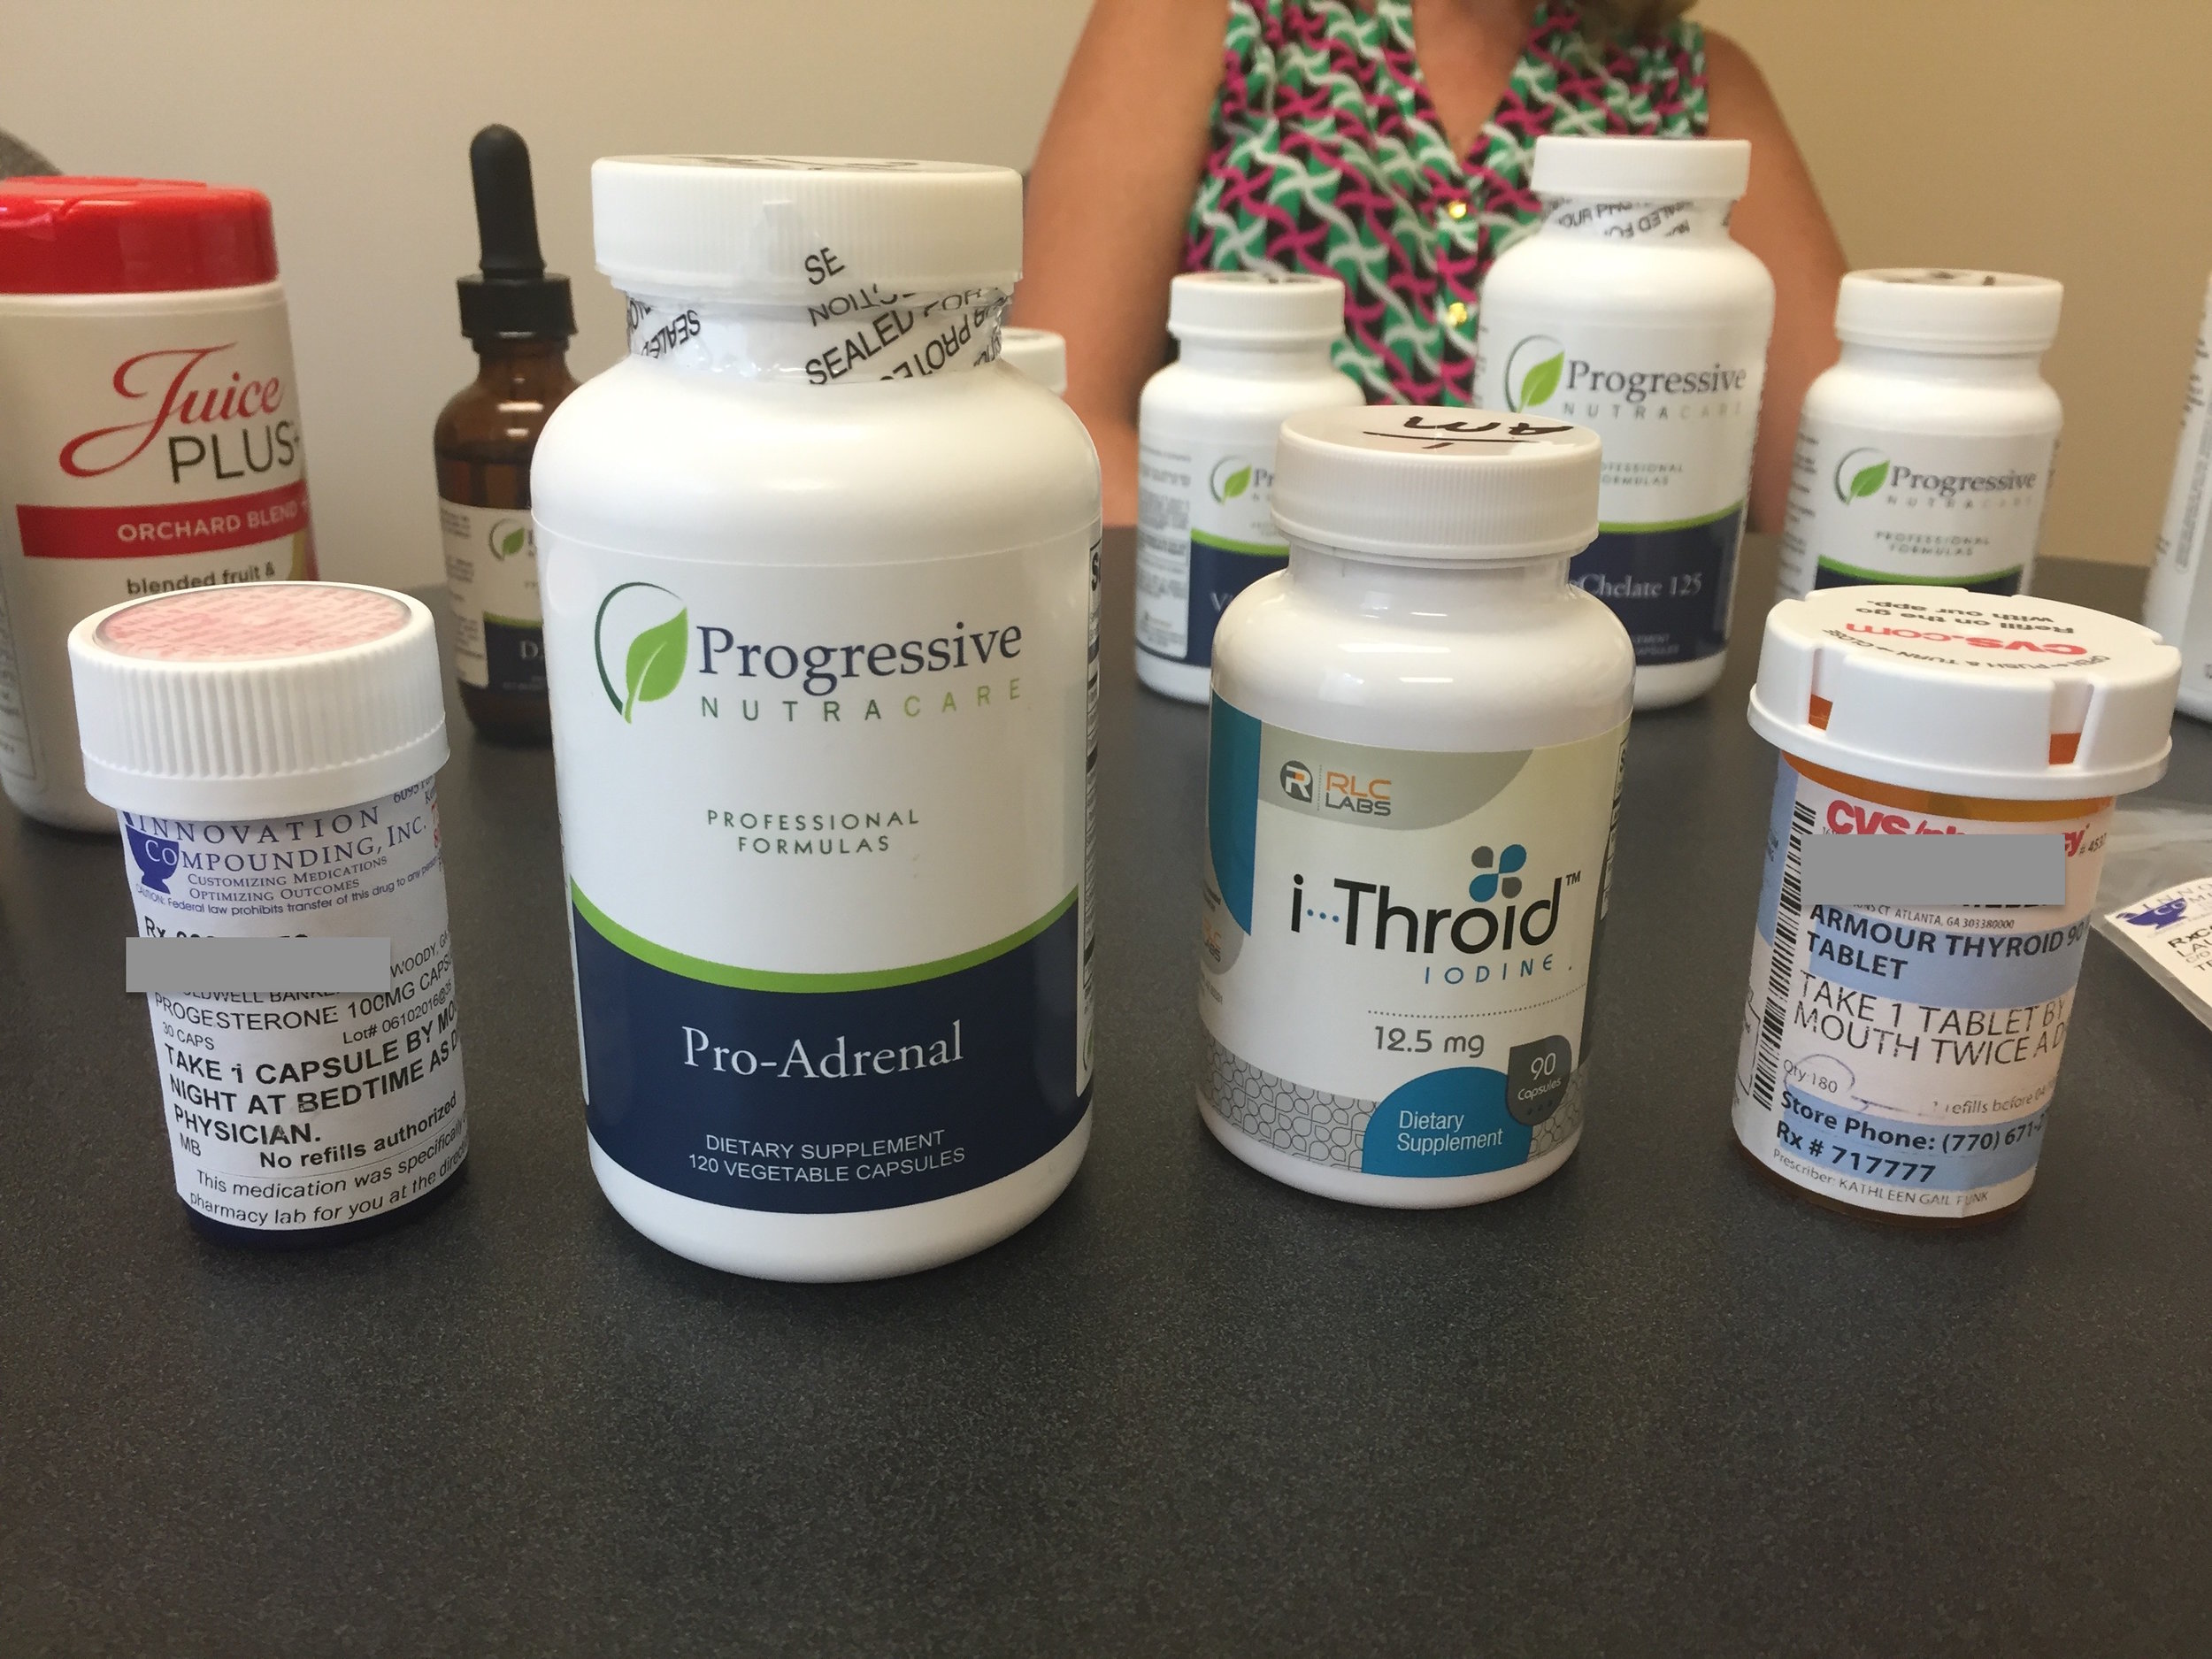 A New patient shows us the various adrenal supplements she's used along with drug hormone therapies prescribed by her